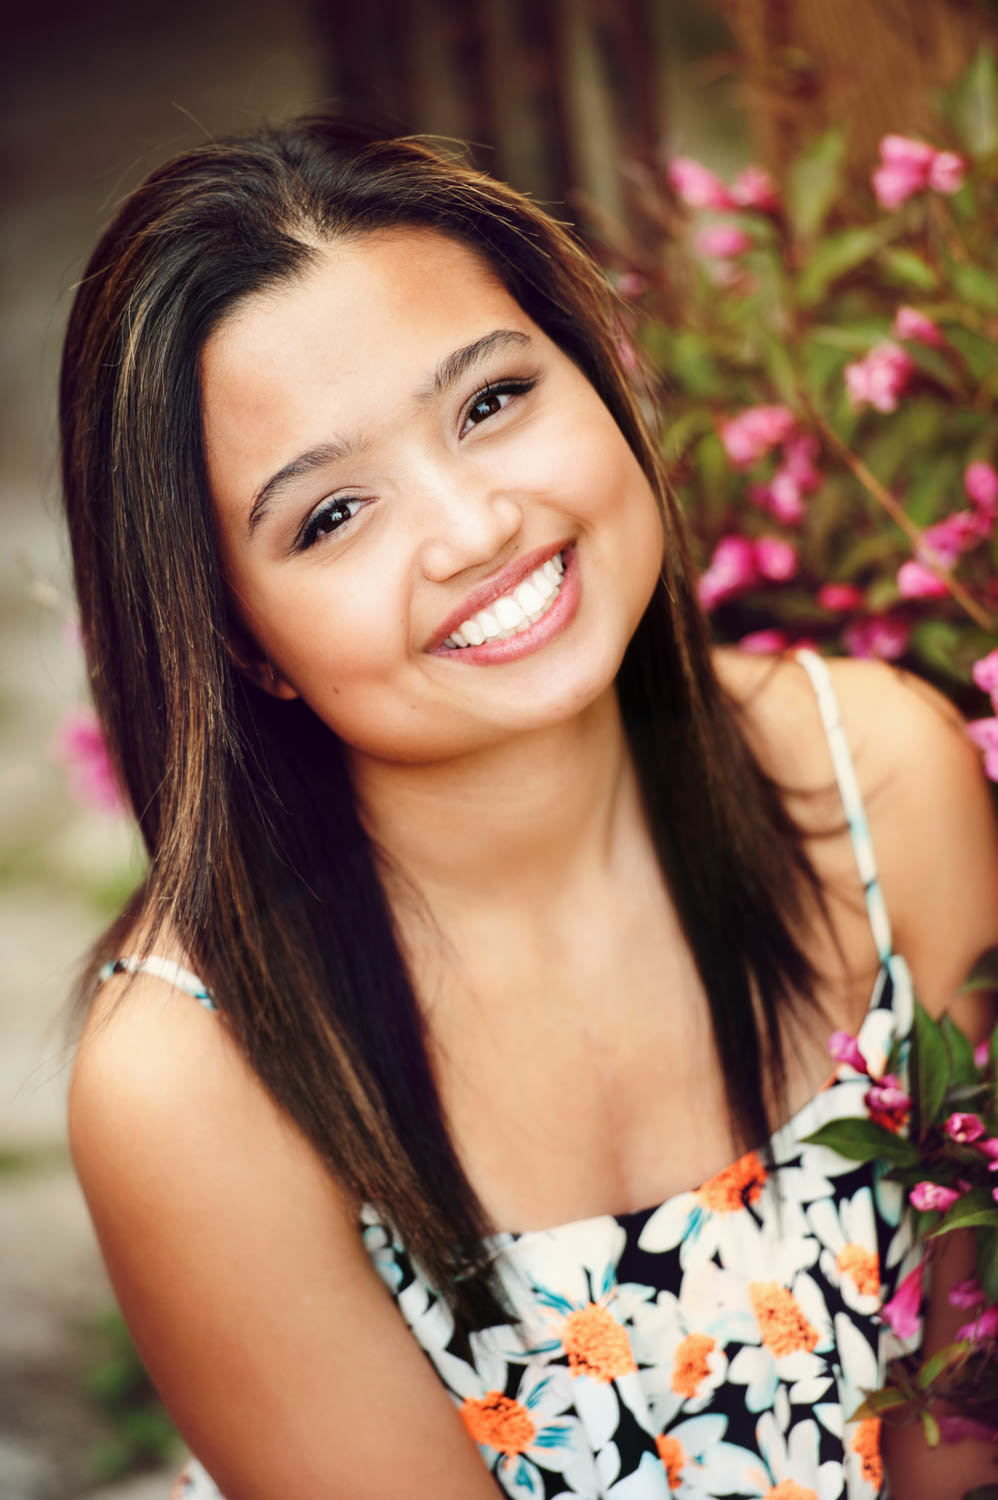 Senior picture of Asian girl with flowers